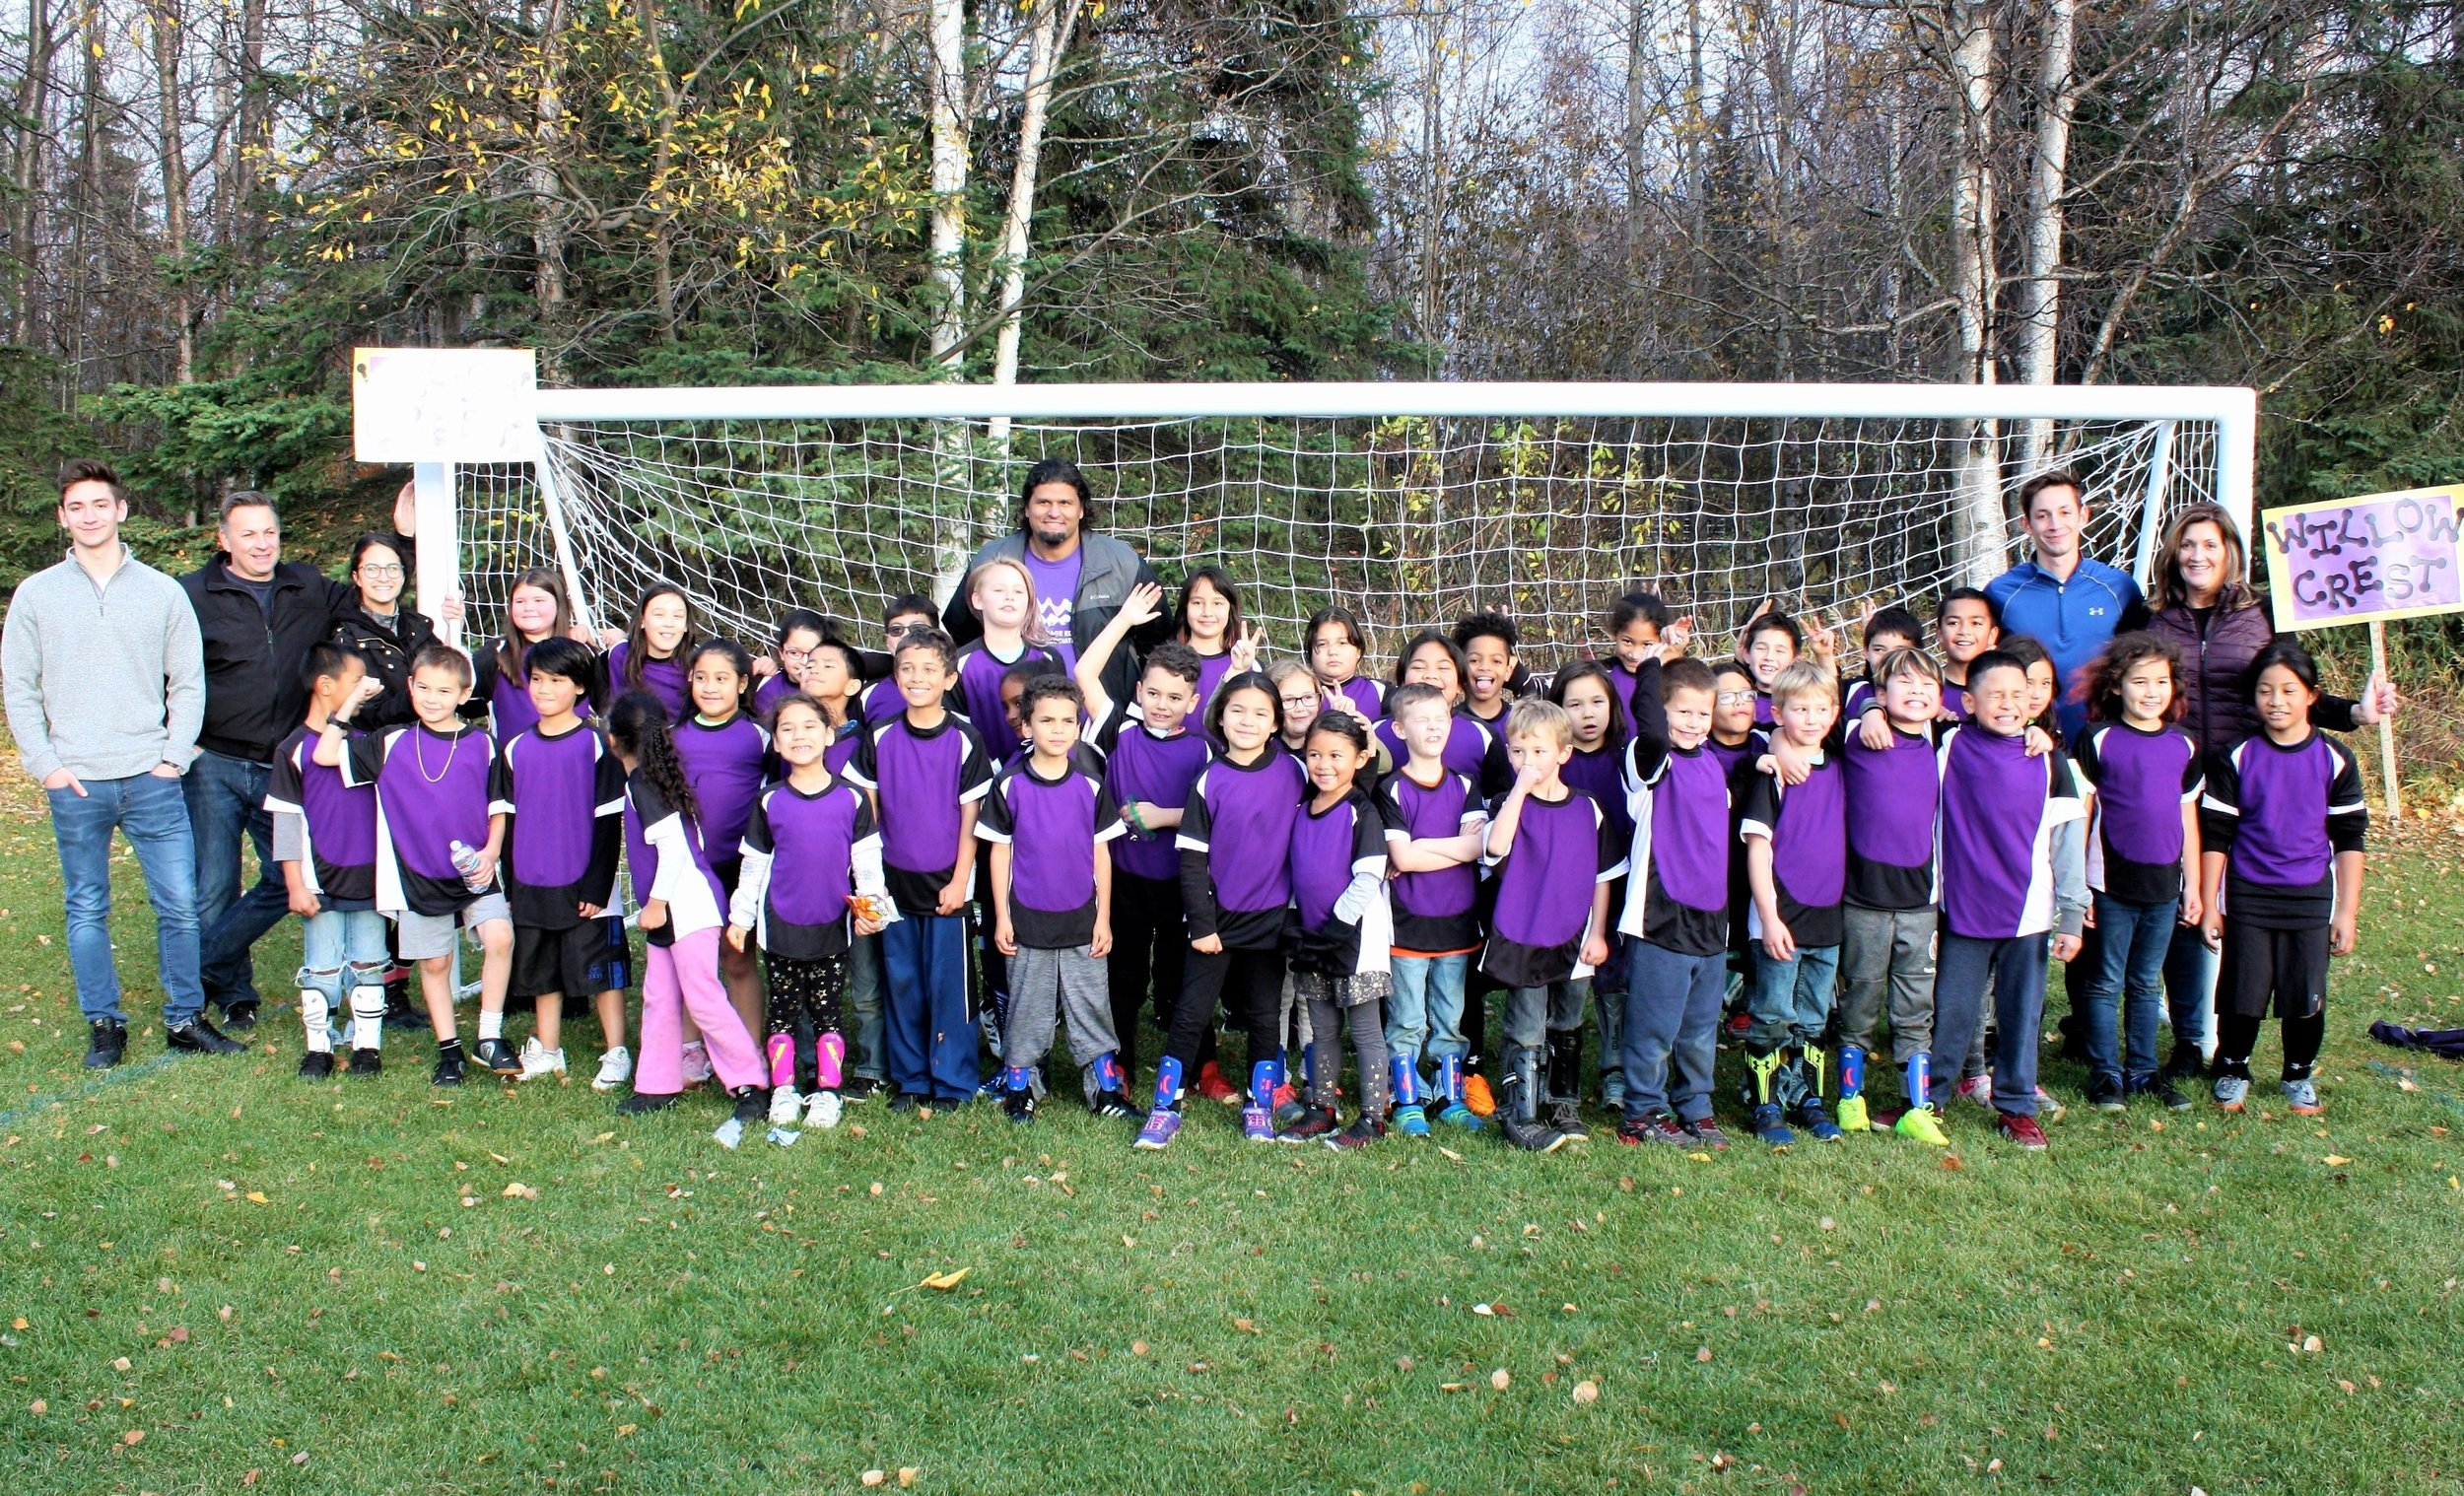 Willowcrest Wolverine Soccer Team (Grades K-4th) and coaches excited after competing in the 2018 Fall Soccer Jamboree.